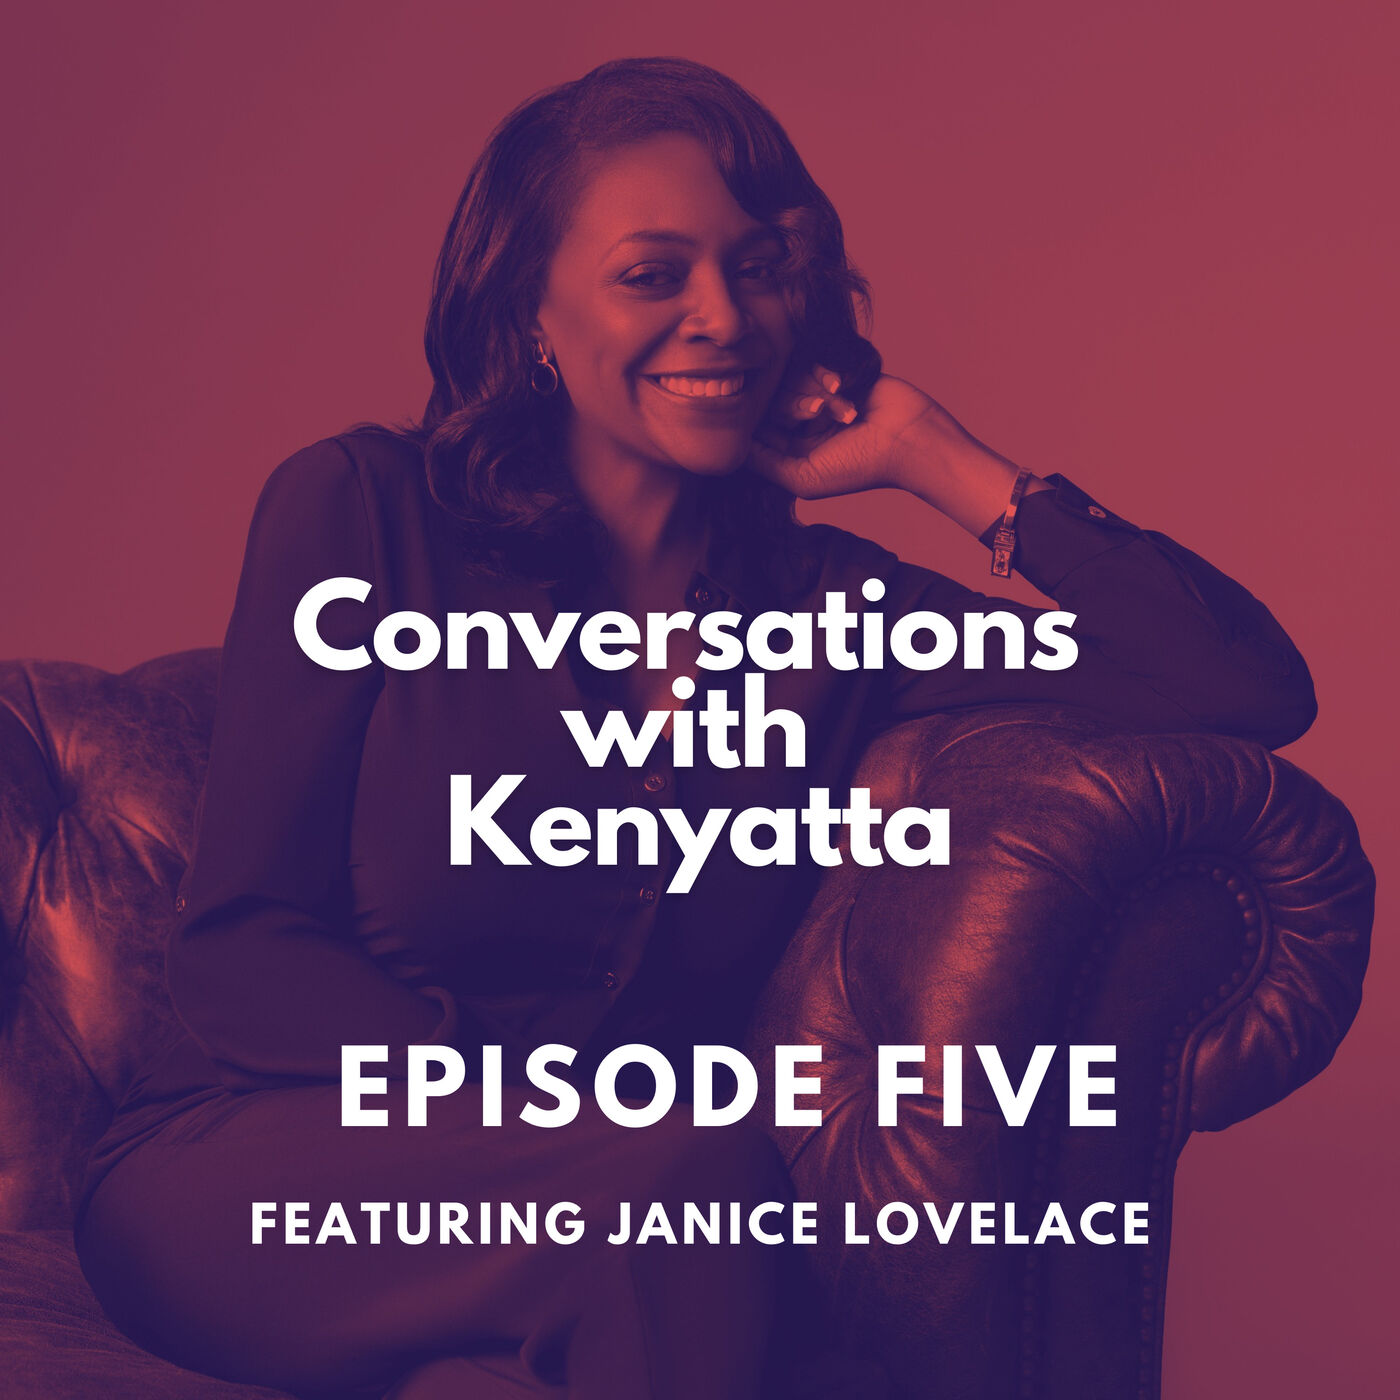 A Conversation with Janice Lovelace